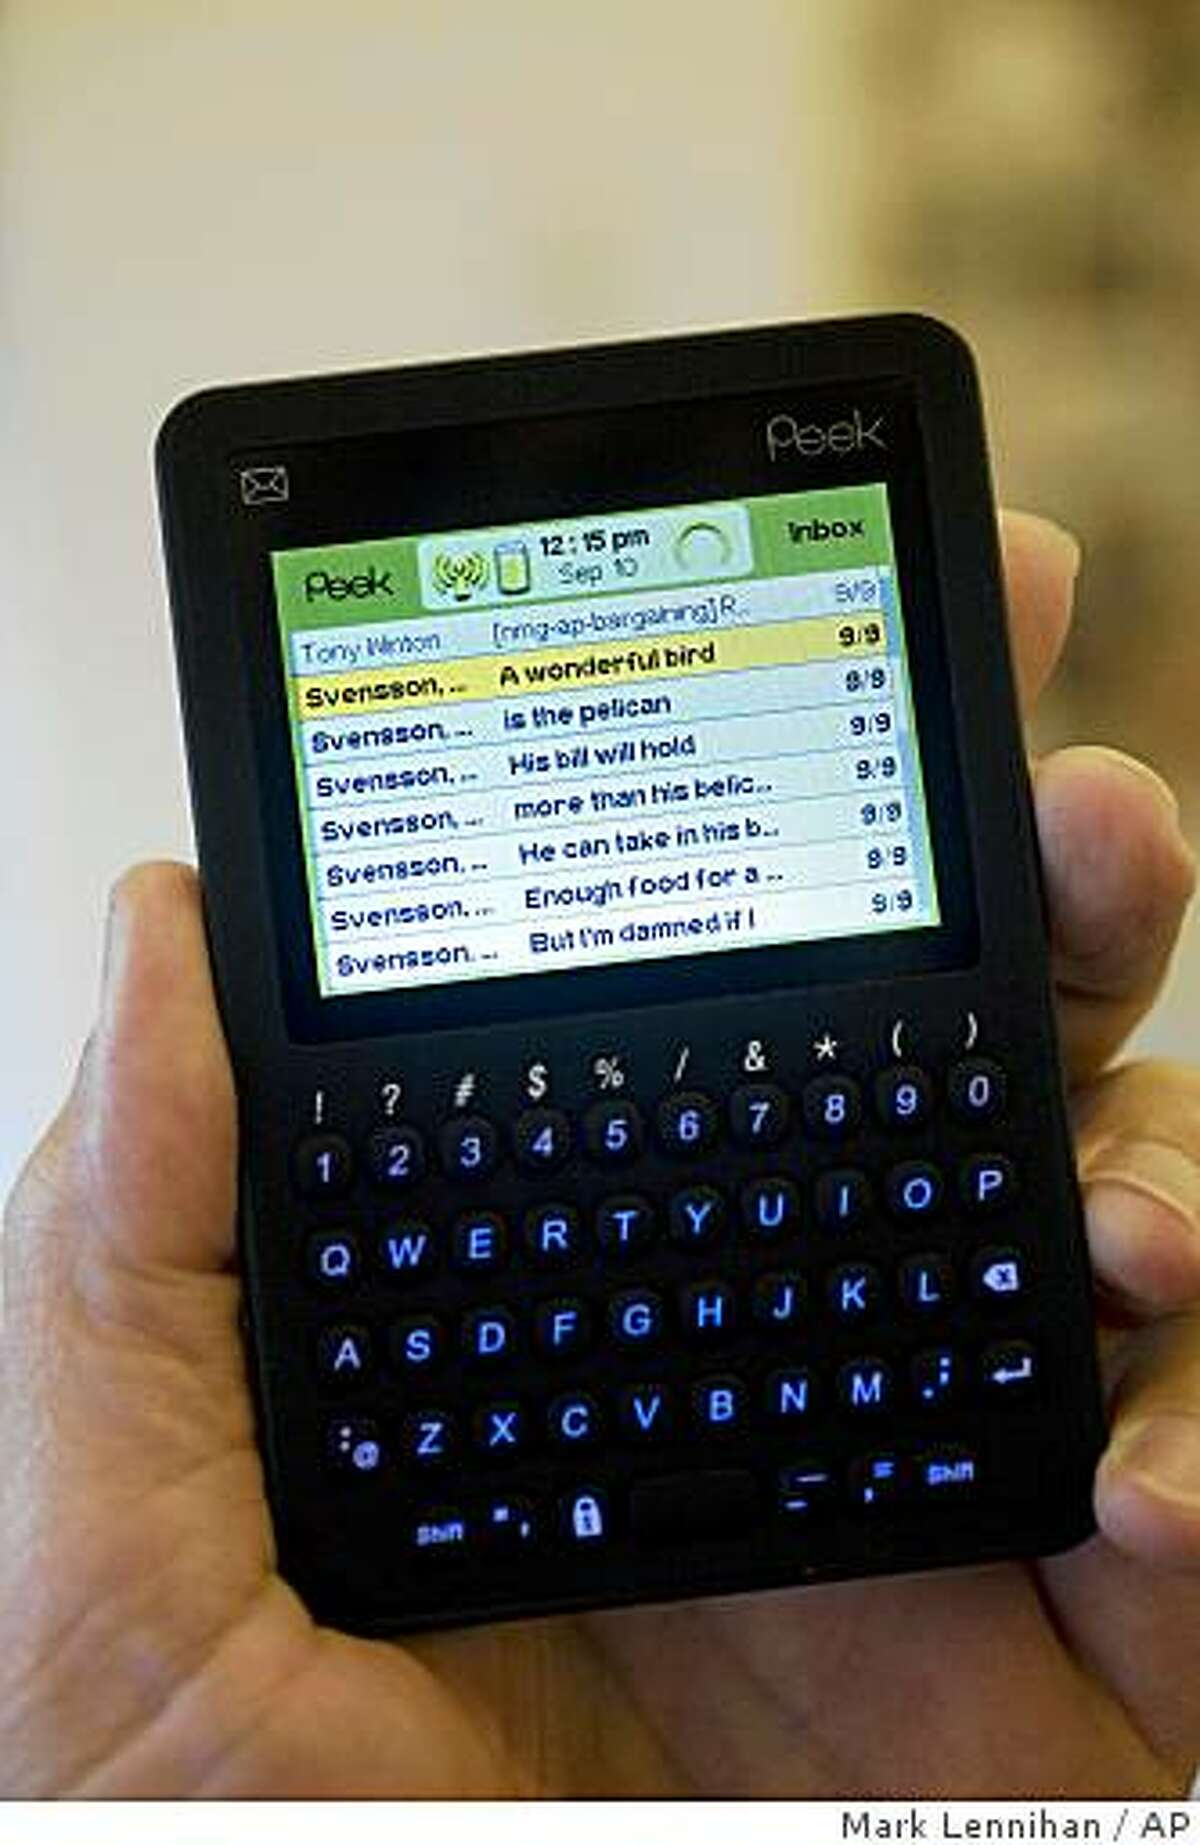 The Peek is displayed Wednesday, Sept. 10, 2008, in New York. A New York-based startup is trying to fill the niche the BlackBerry abandoned with a sleek, cheap e-mail pager that hits Target stores next Monday, Sept. 15, 2008. (AP Photo/Mark Lennihan)